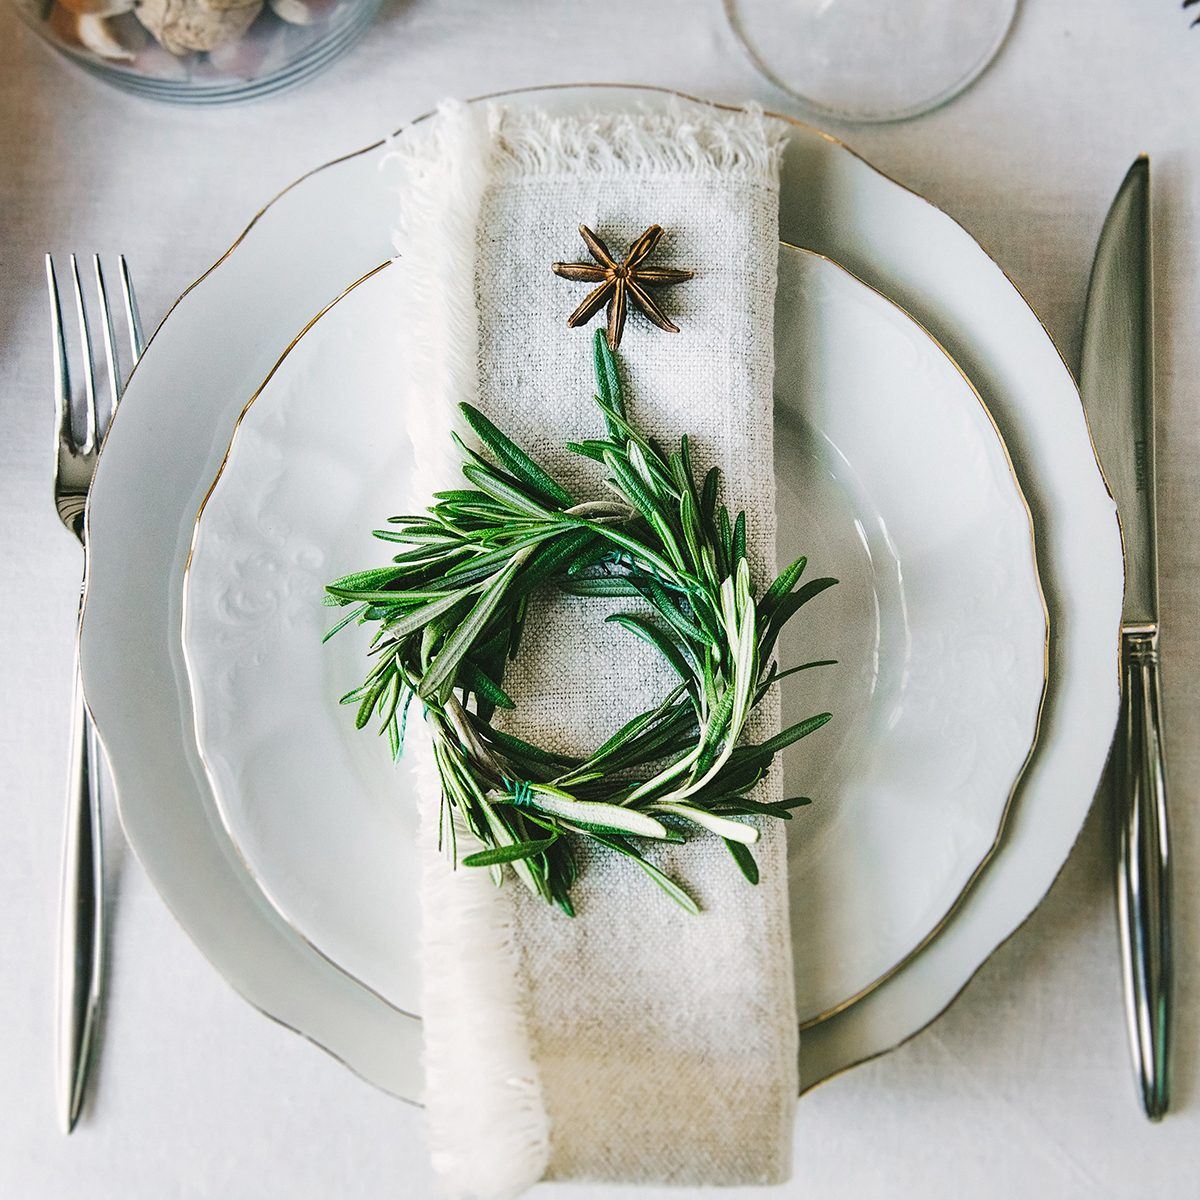 Decorative green wreath on a napkin as a part of table appointment